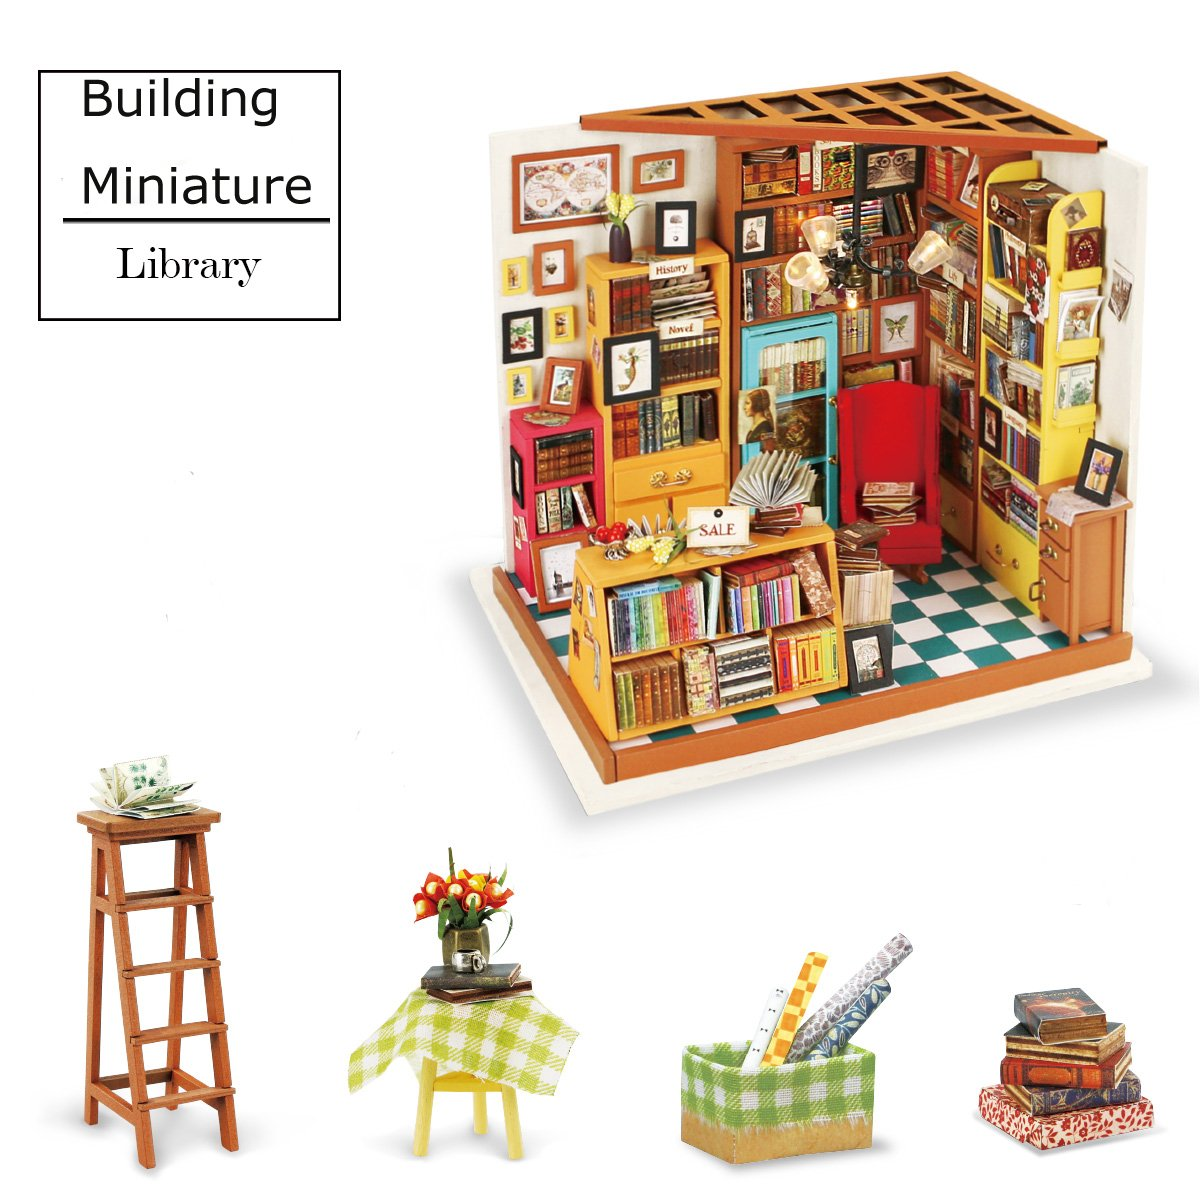 Dollhouse Kit to Build - DIY Library Miniature Furniture Accessories - Top Gift for Kids 14 Year Old and Up